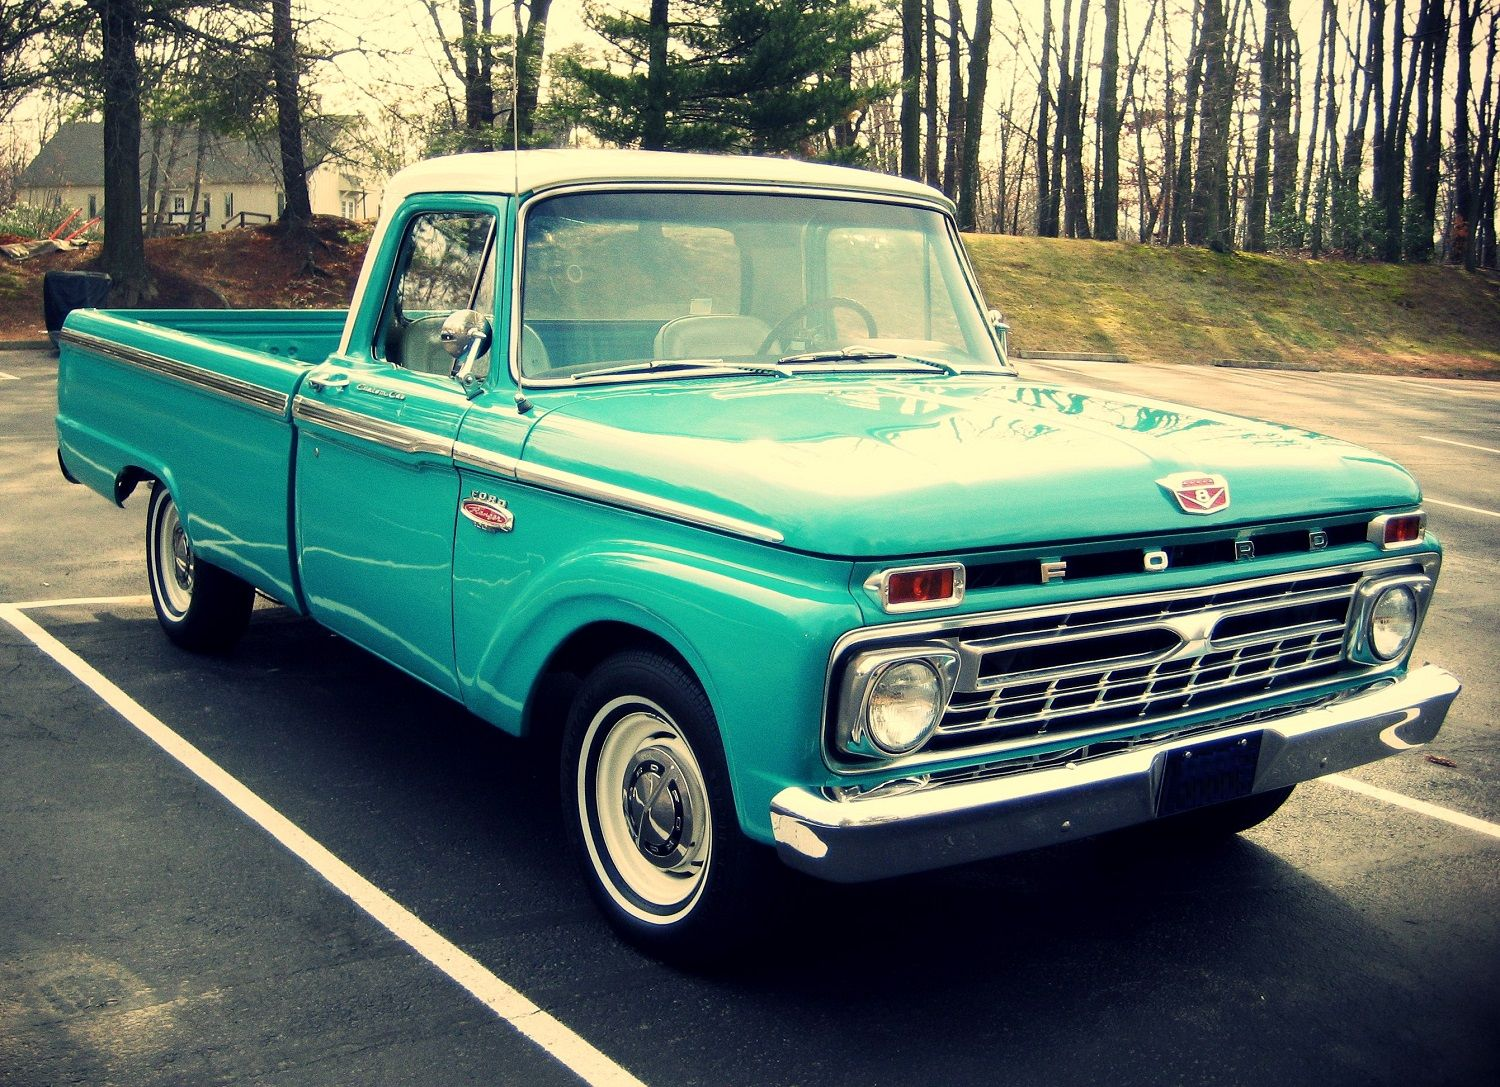 Visit our website to view our large inventory of affordable classic 1966 ford pickup trucks for sale